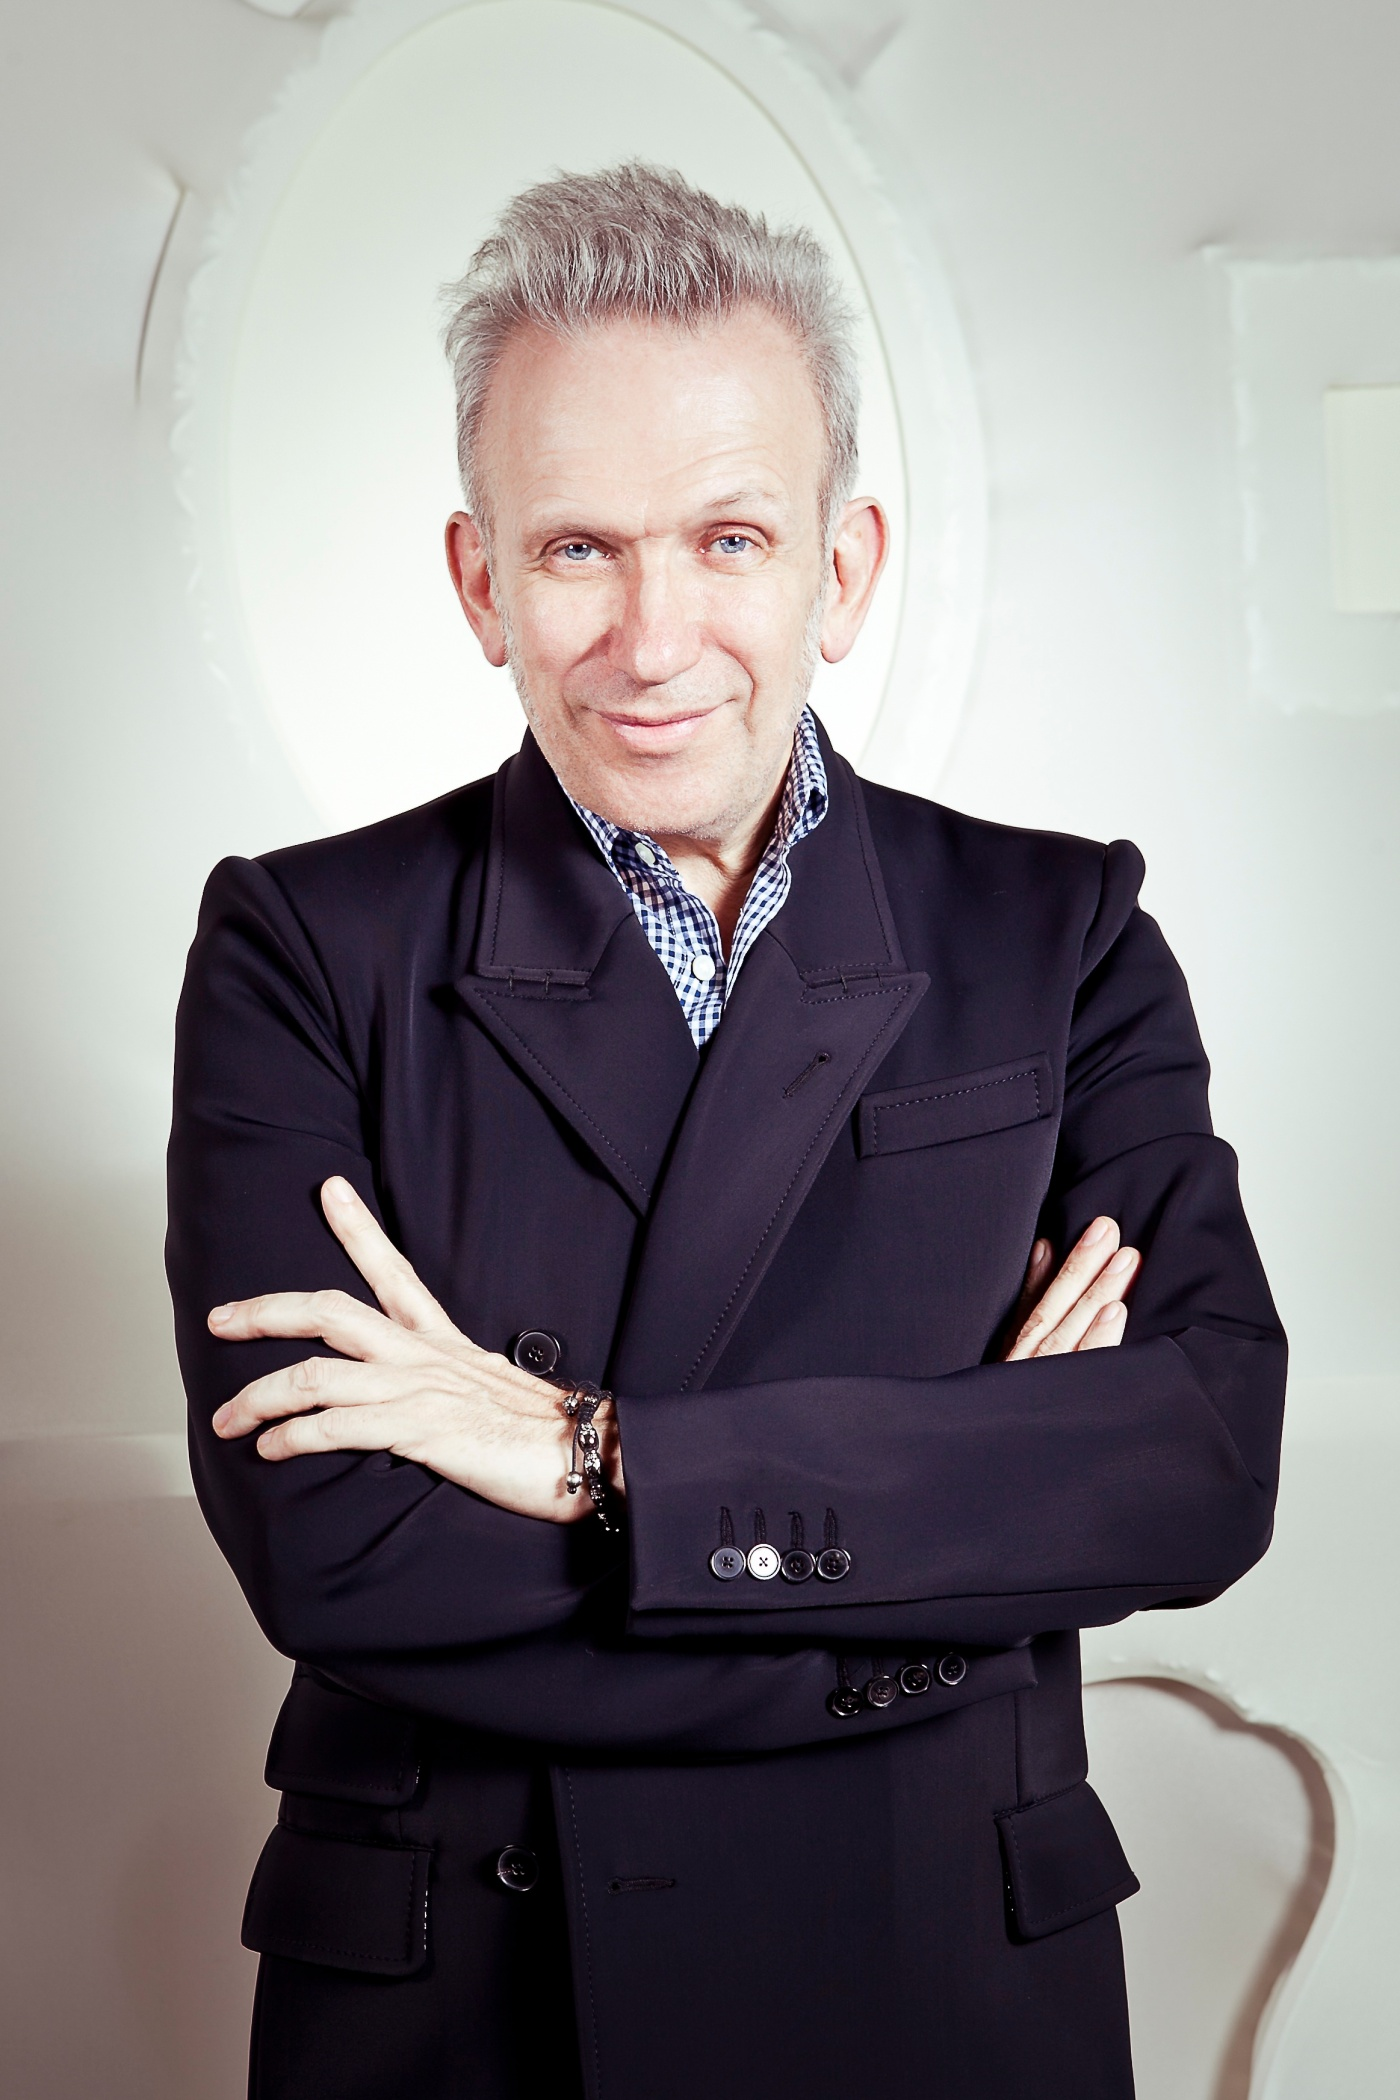 02-jean-paul-gaultier-the-fashion-worl-of-jean-paul-gaultier